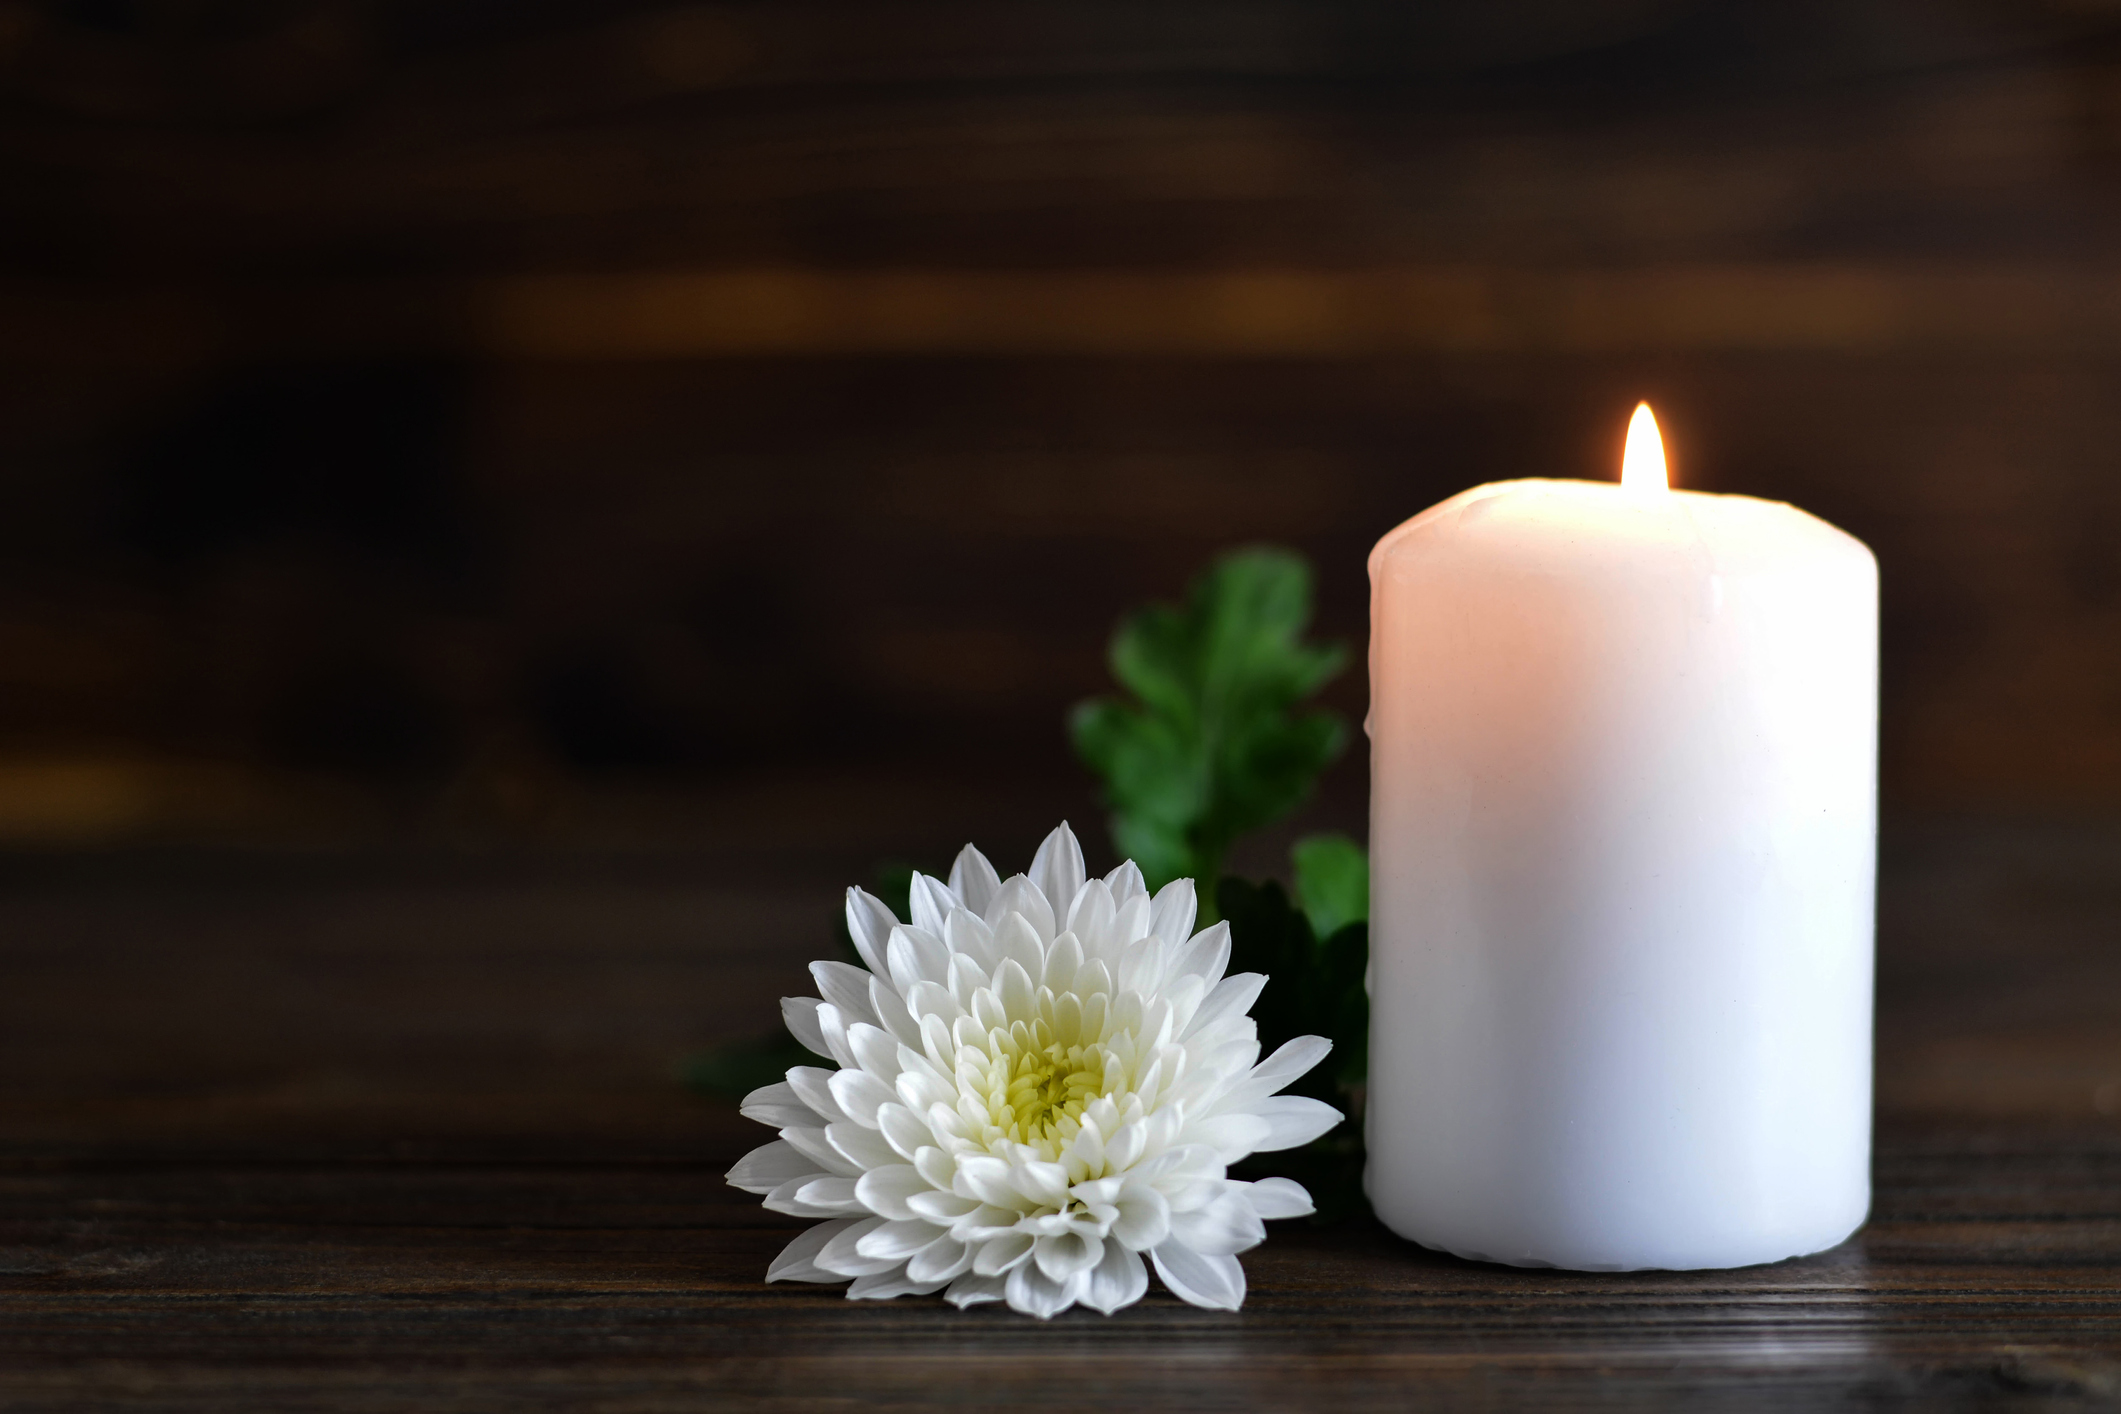 memorial-candle-white-flower